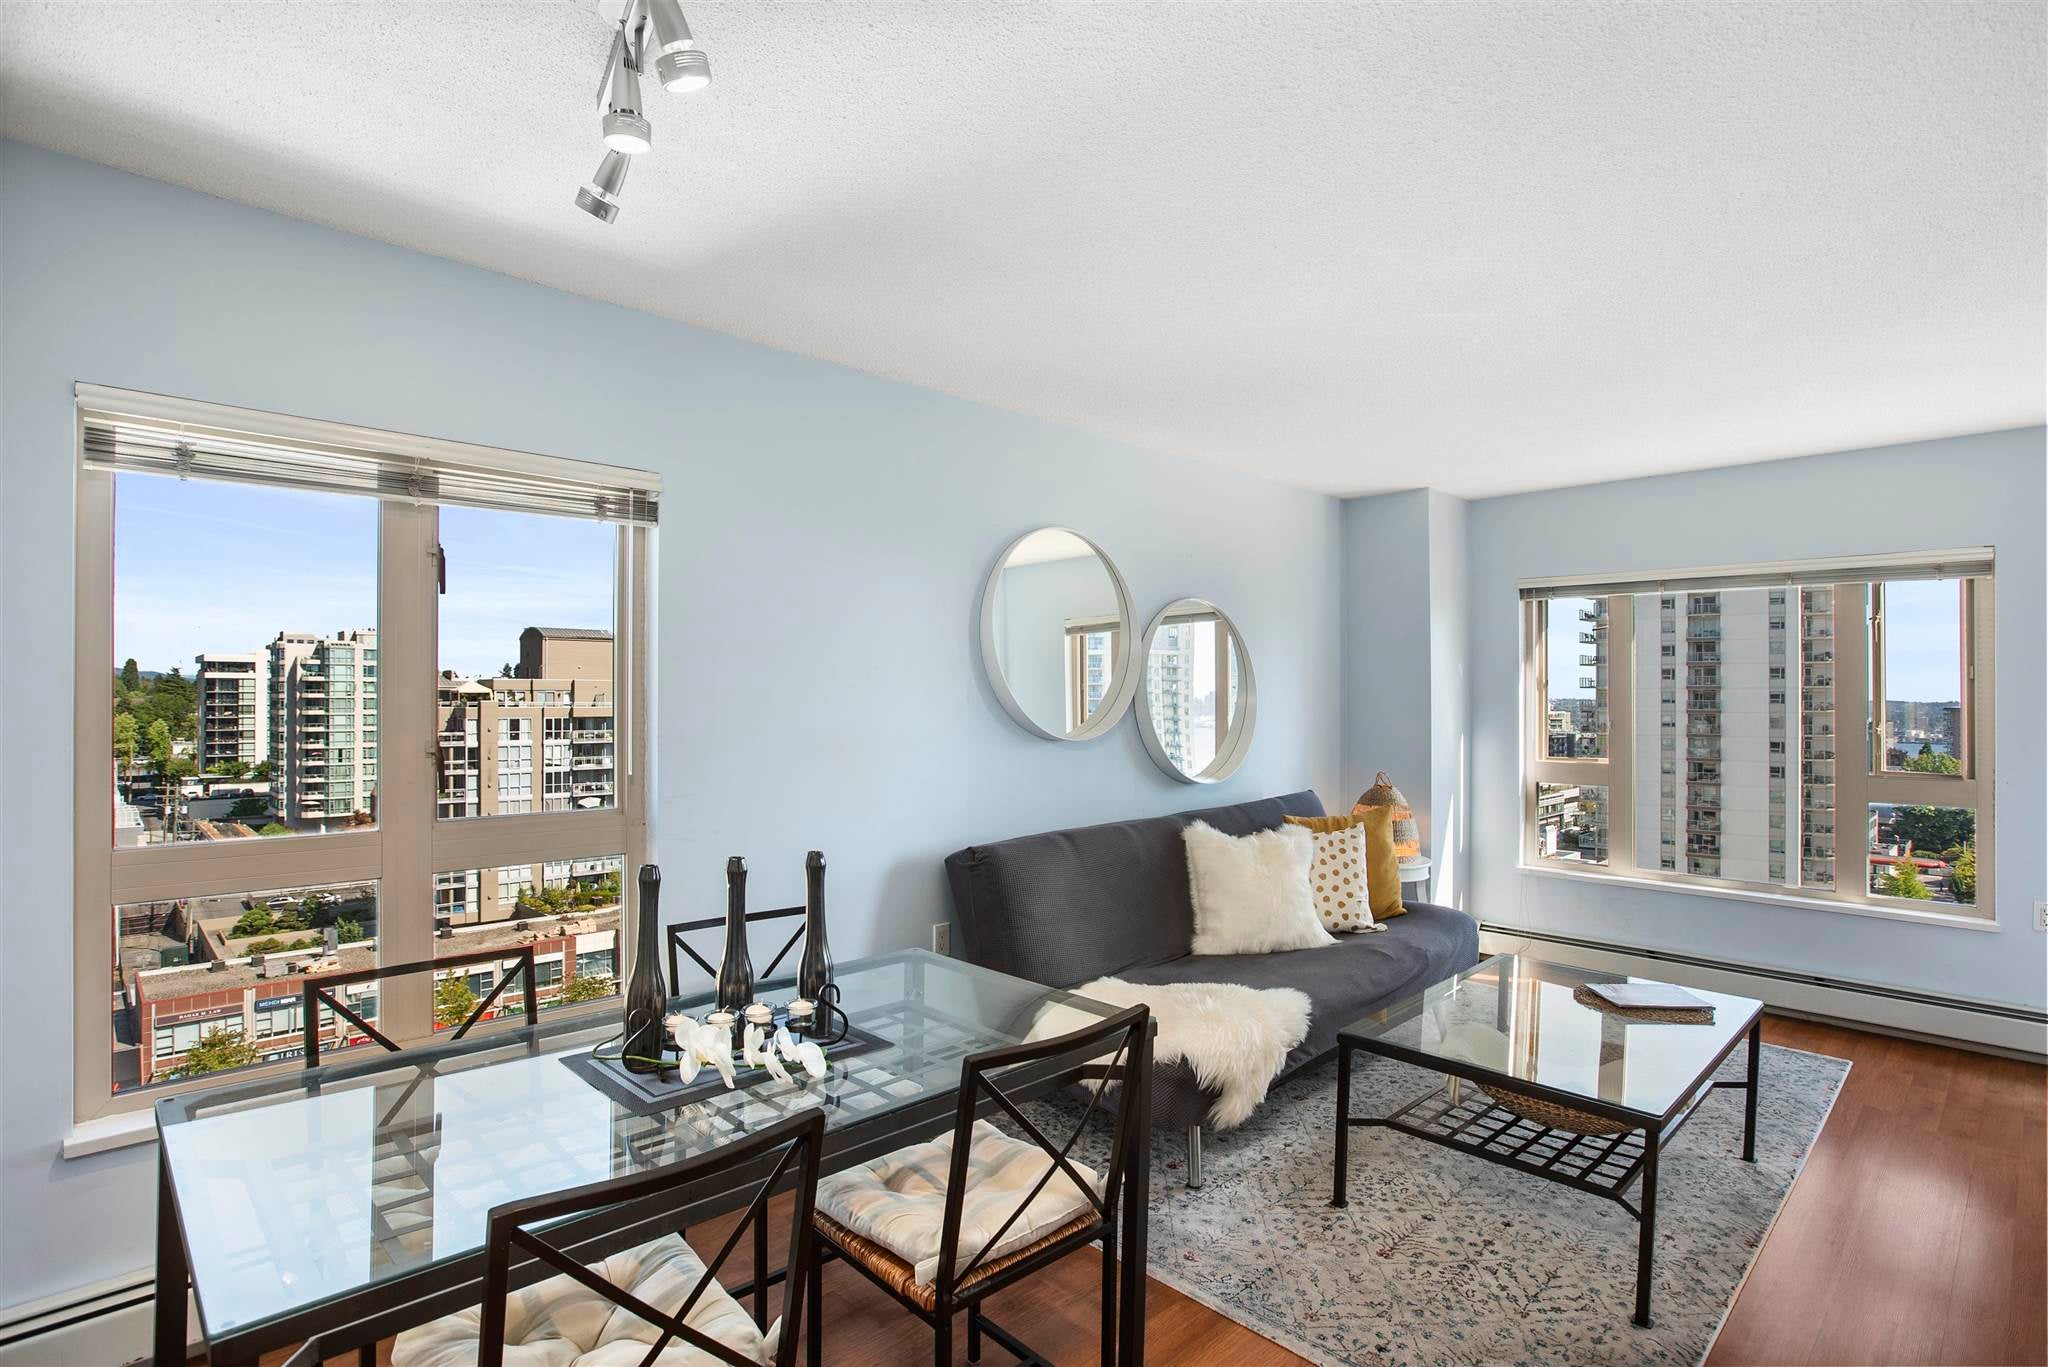 1103 121 W 15TH STREET - Central Lonsdale Apartment/Condo for sale, 1 Bedroom (R2620636) - #8